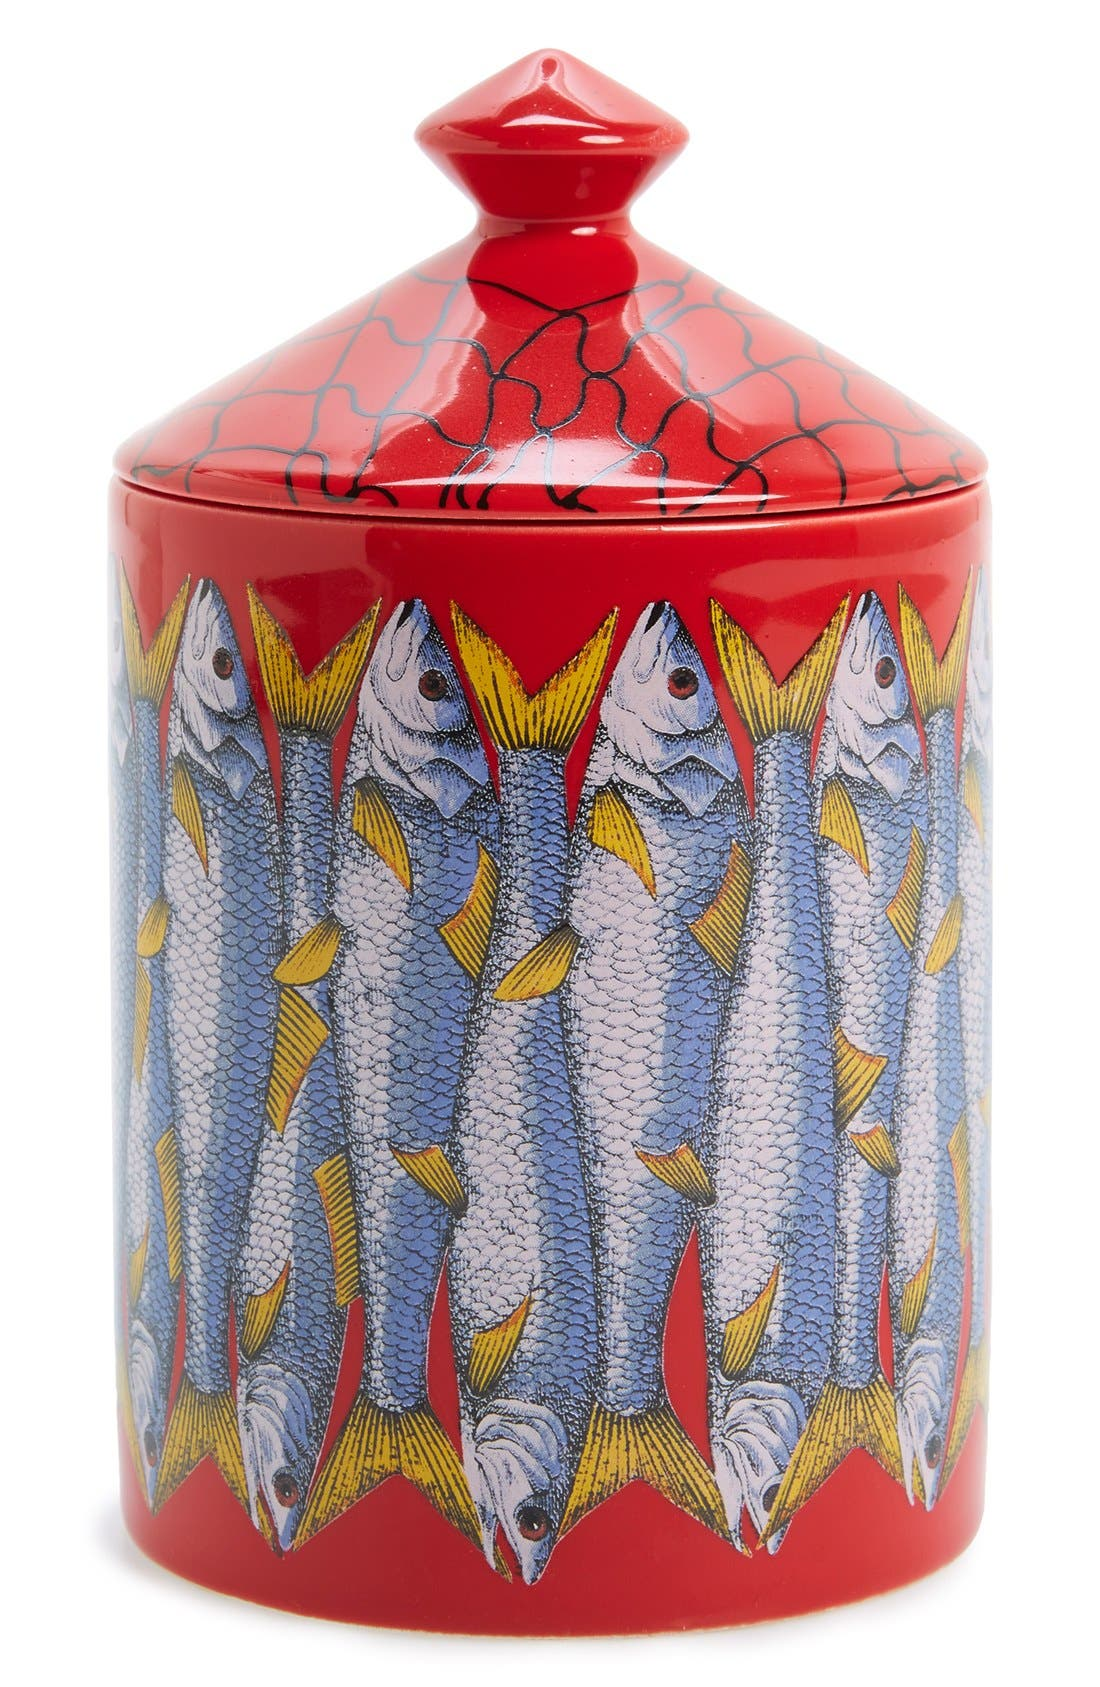 'Sardine Rosso' Lidded Candle,                         Main,                         color, No Color